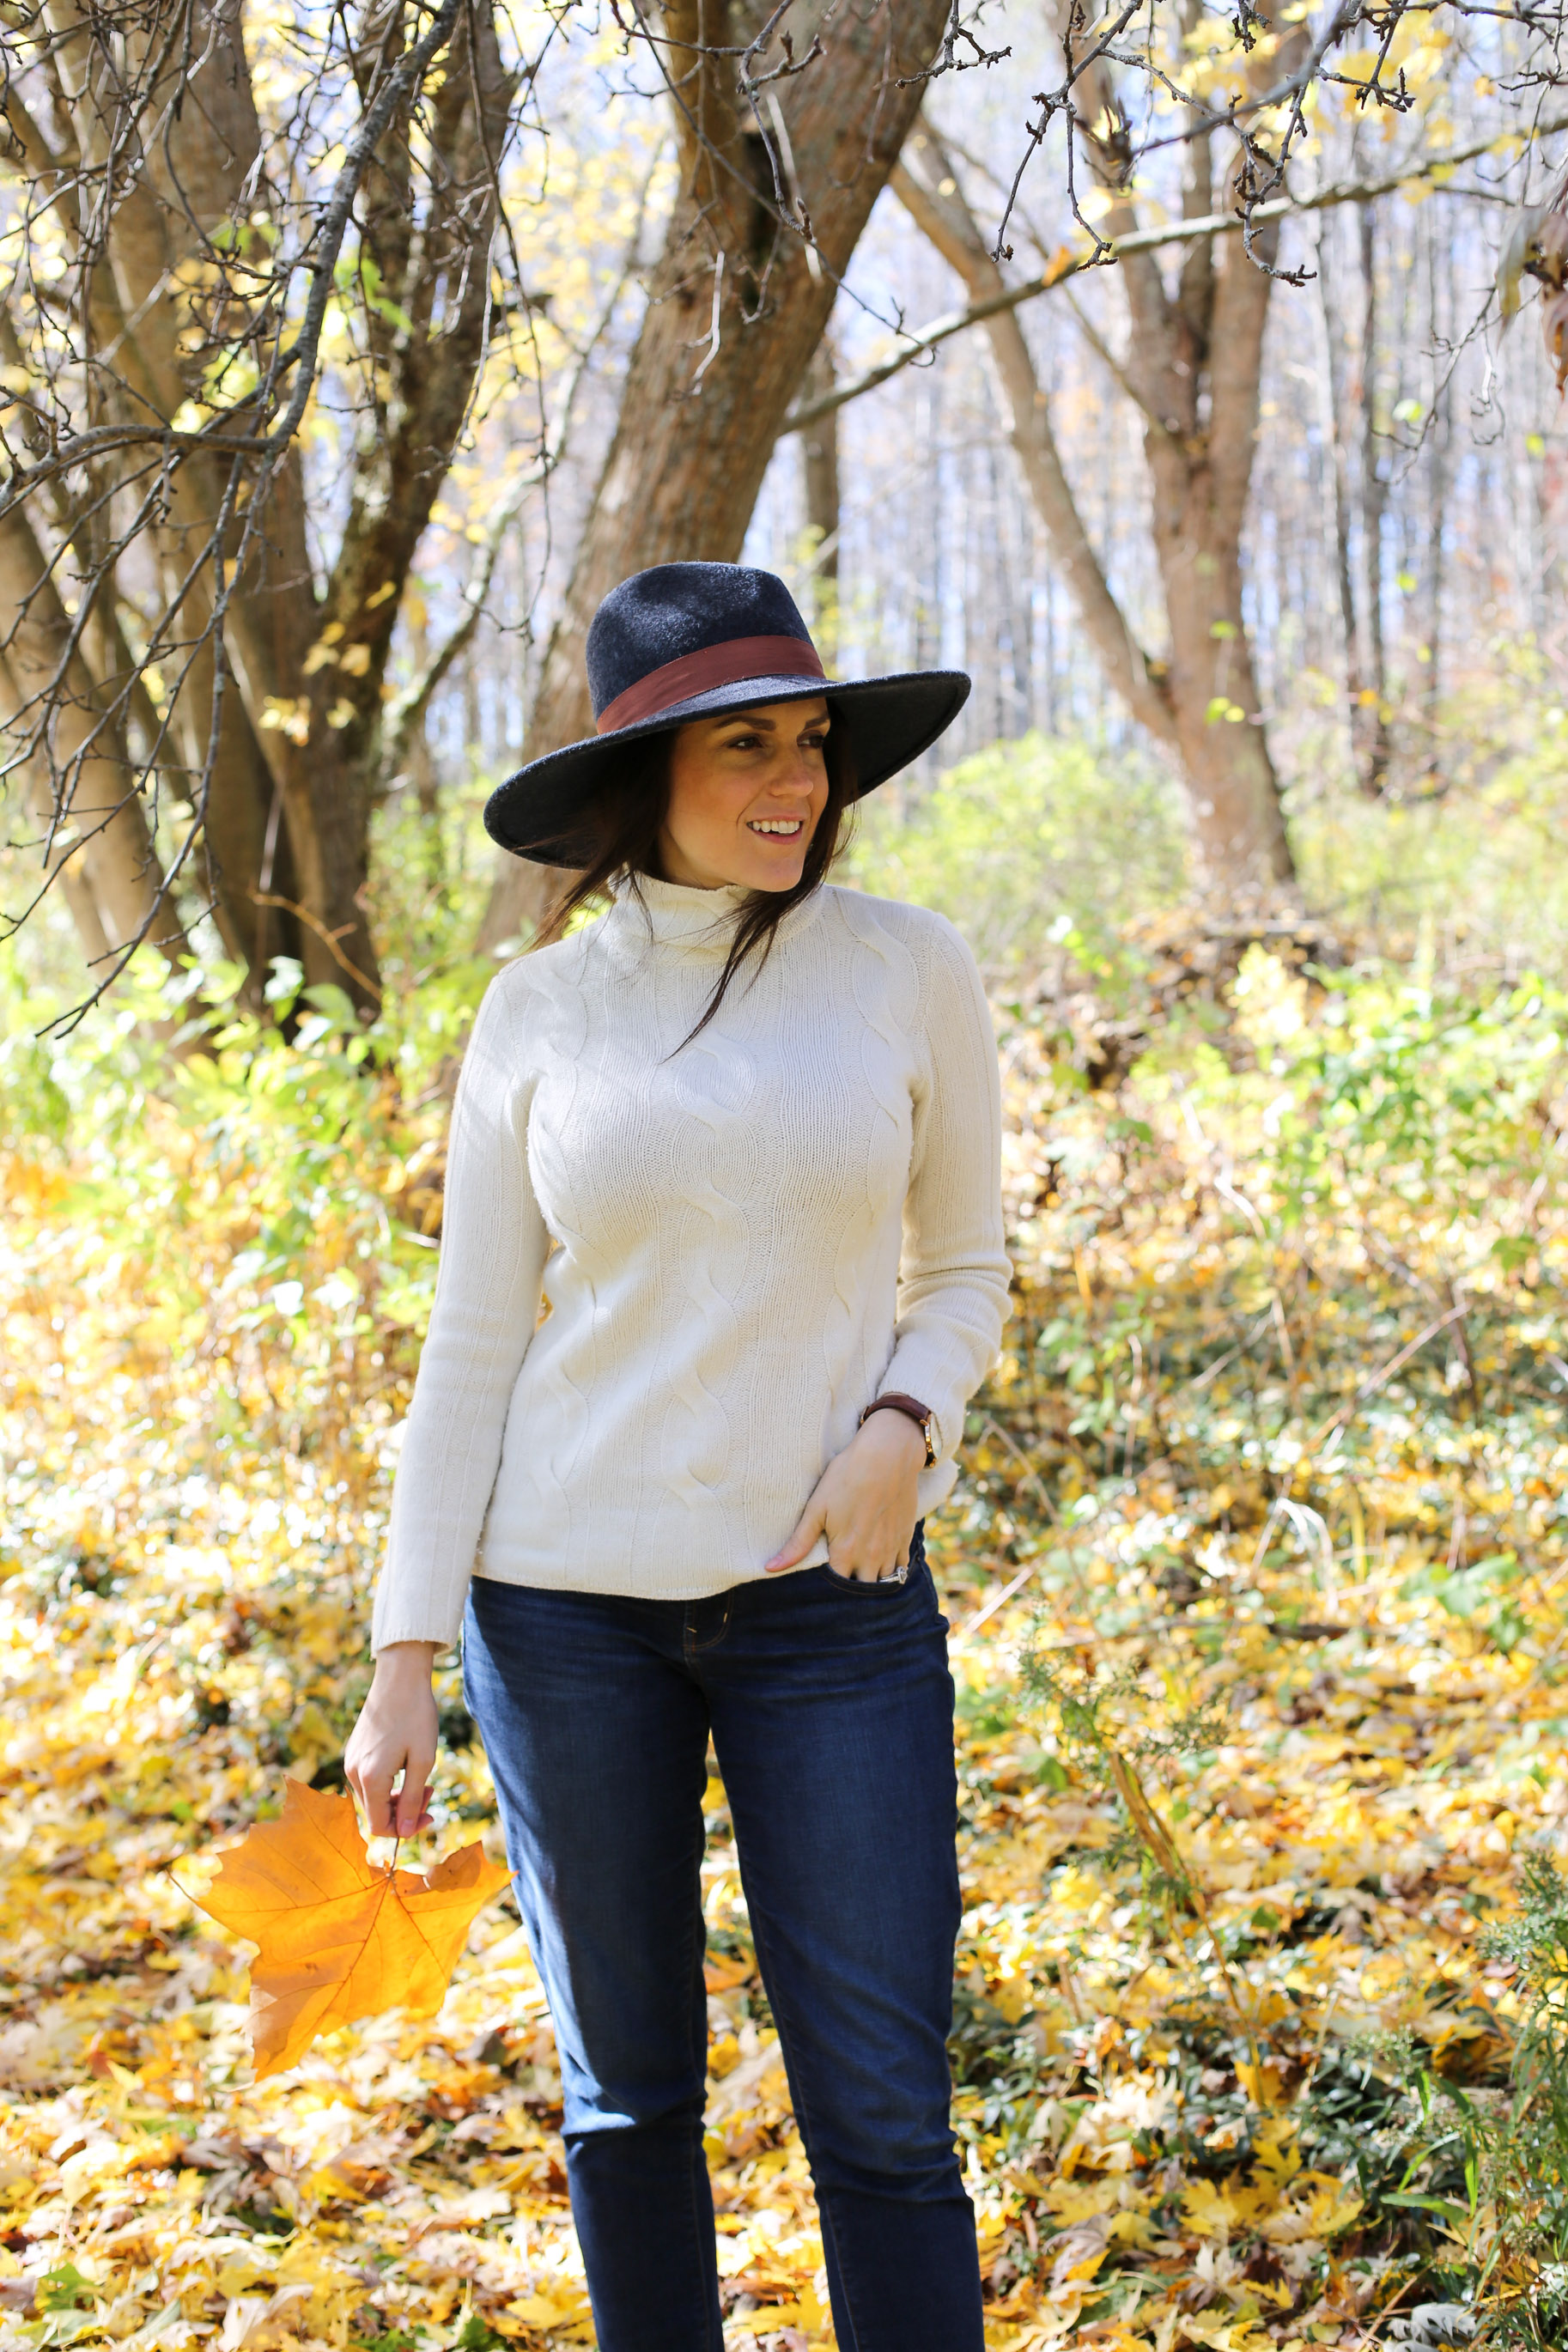 New-England-in-the-fall-14.jpg